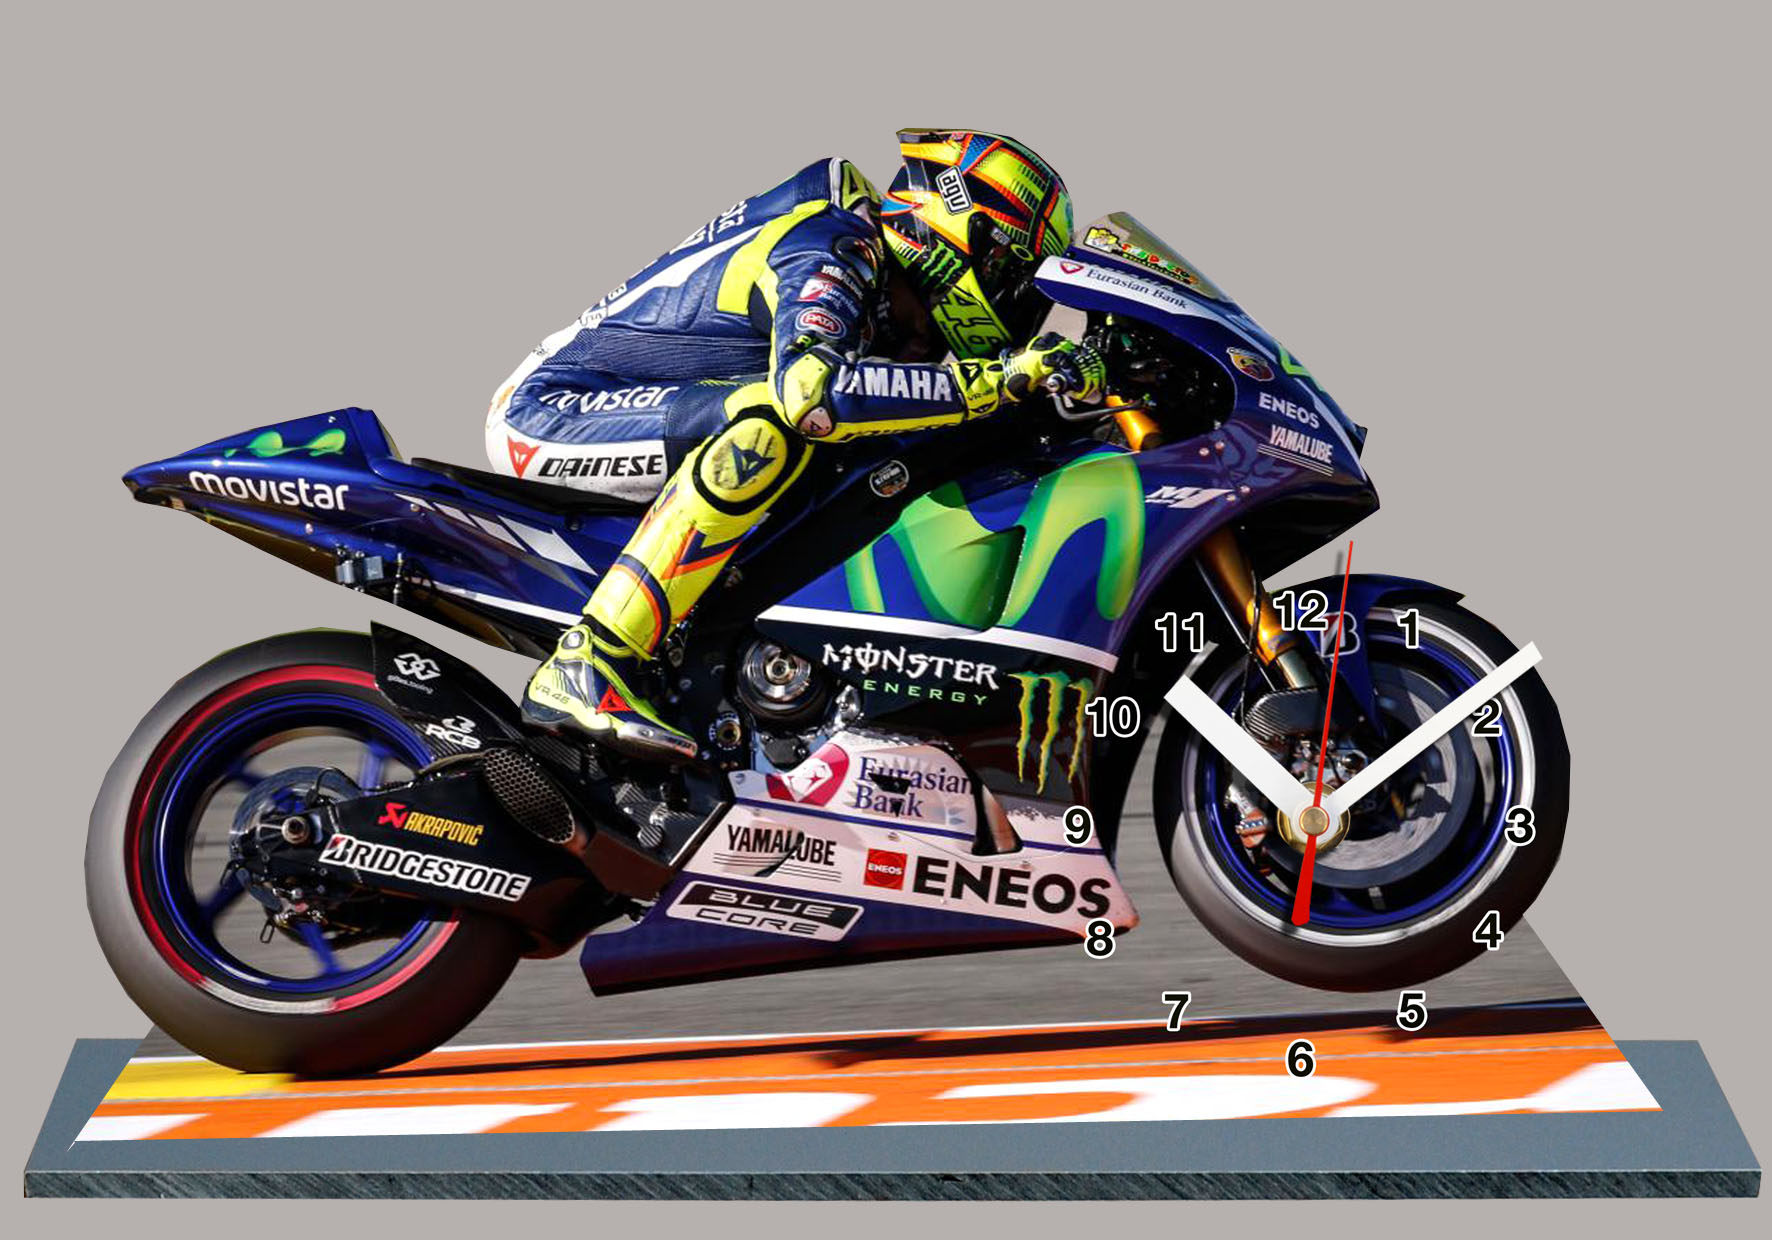 valentino rossi yamaha moto gp 2015 en horloge miniature. Black Bedroom Furniture Sets. Home Design Ideas